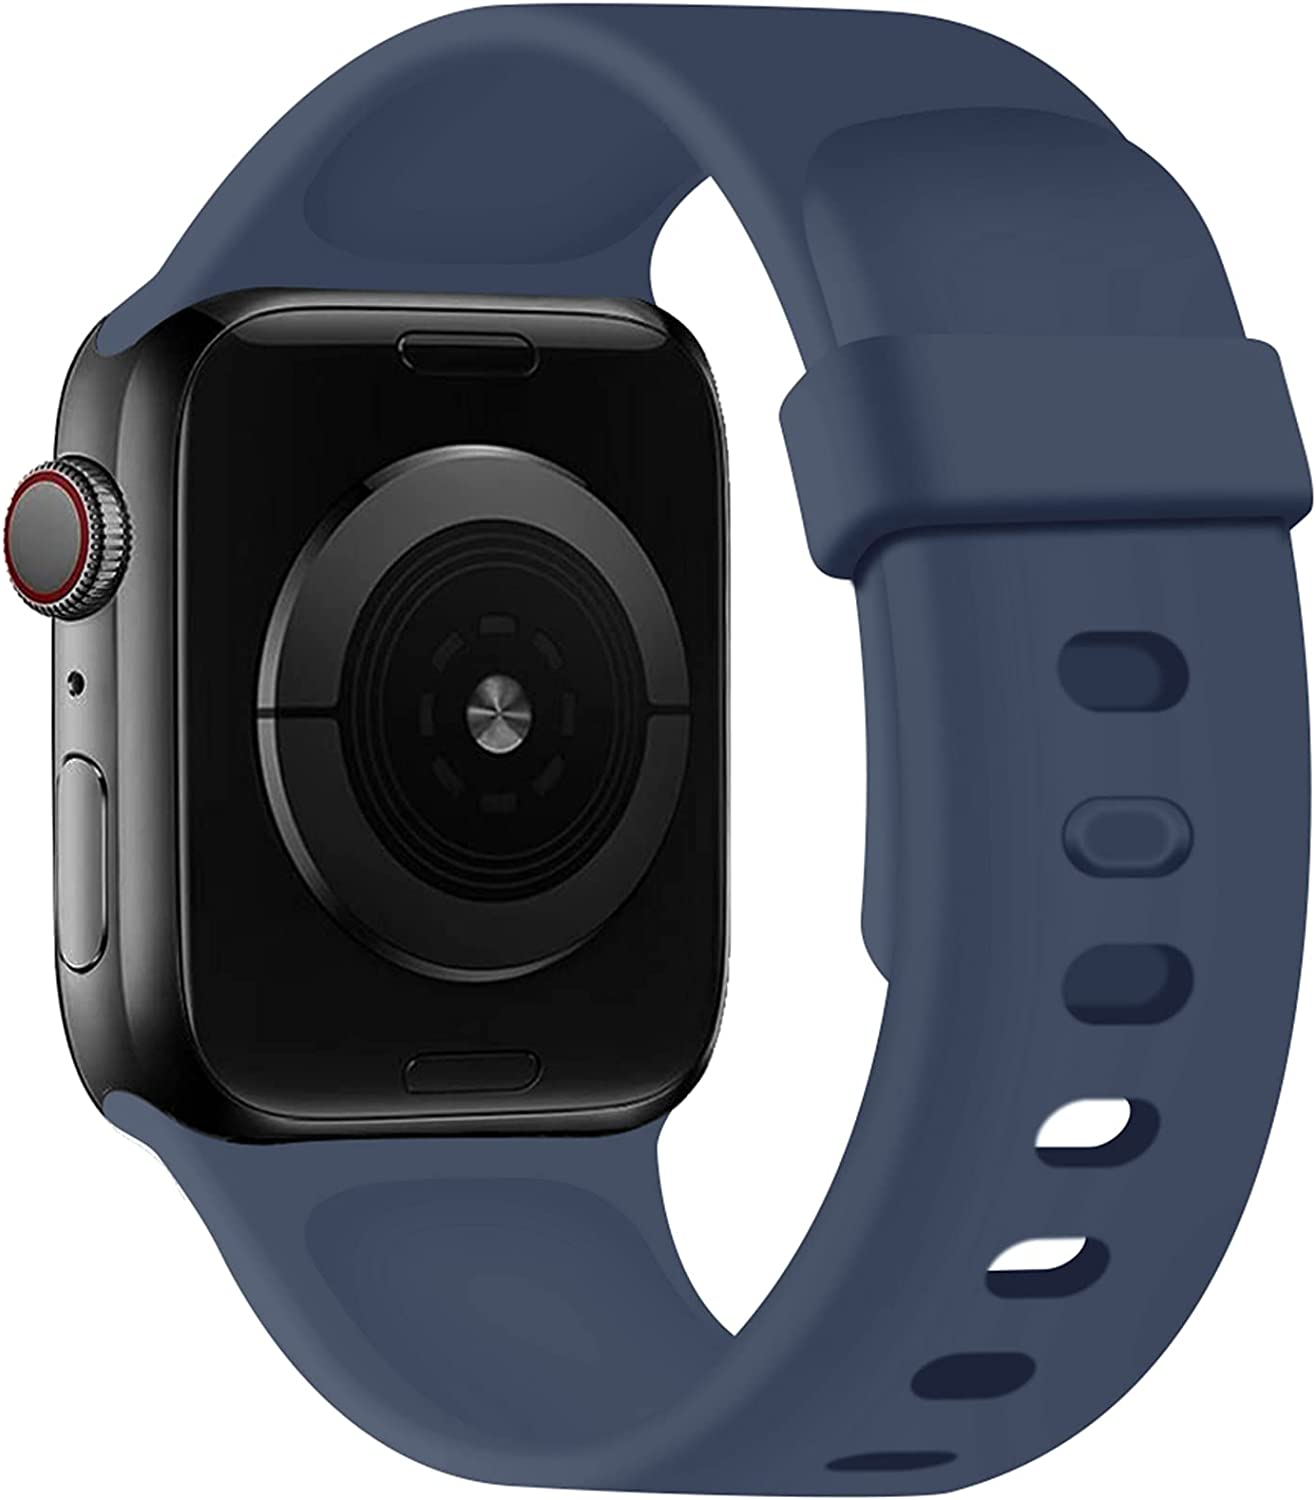 SVISVIPA Sport Bands Compatible with Apple Watch Bands 42mm 44mm, Soft Silicone Wristbands Women Men Replacement Strap for iWatch Series SE/6/5/4/3/2/1,Midnight Blue